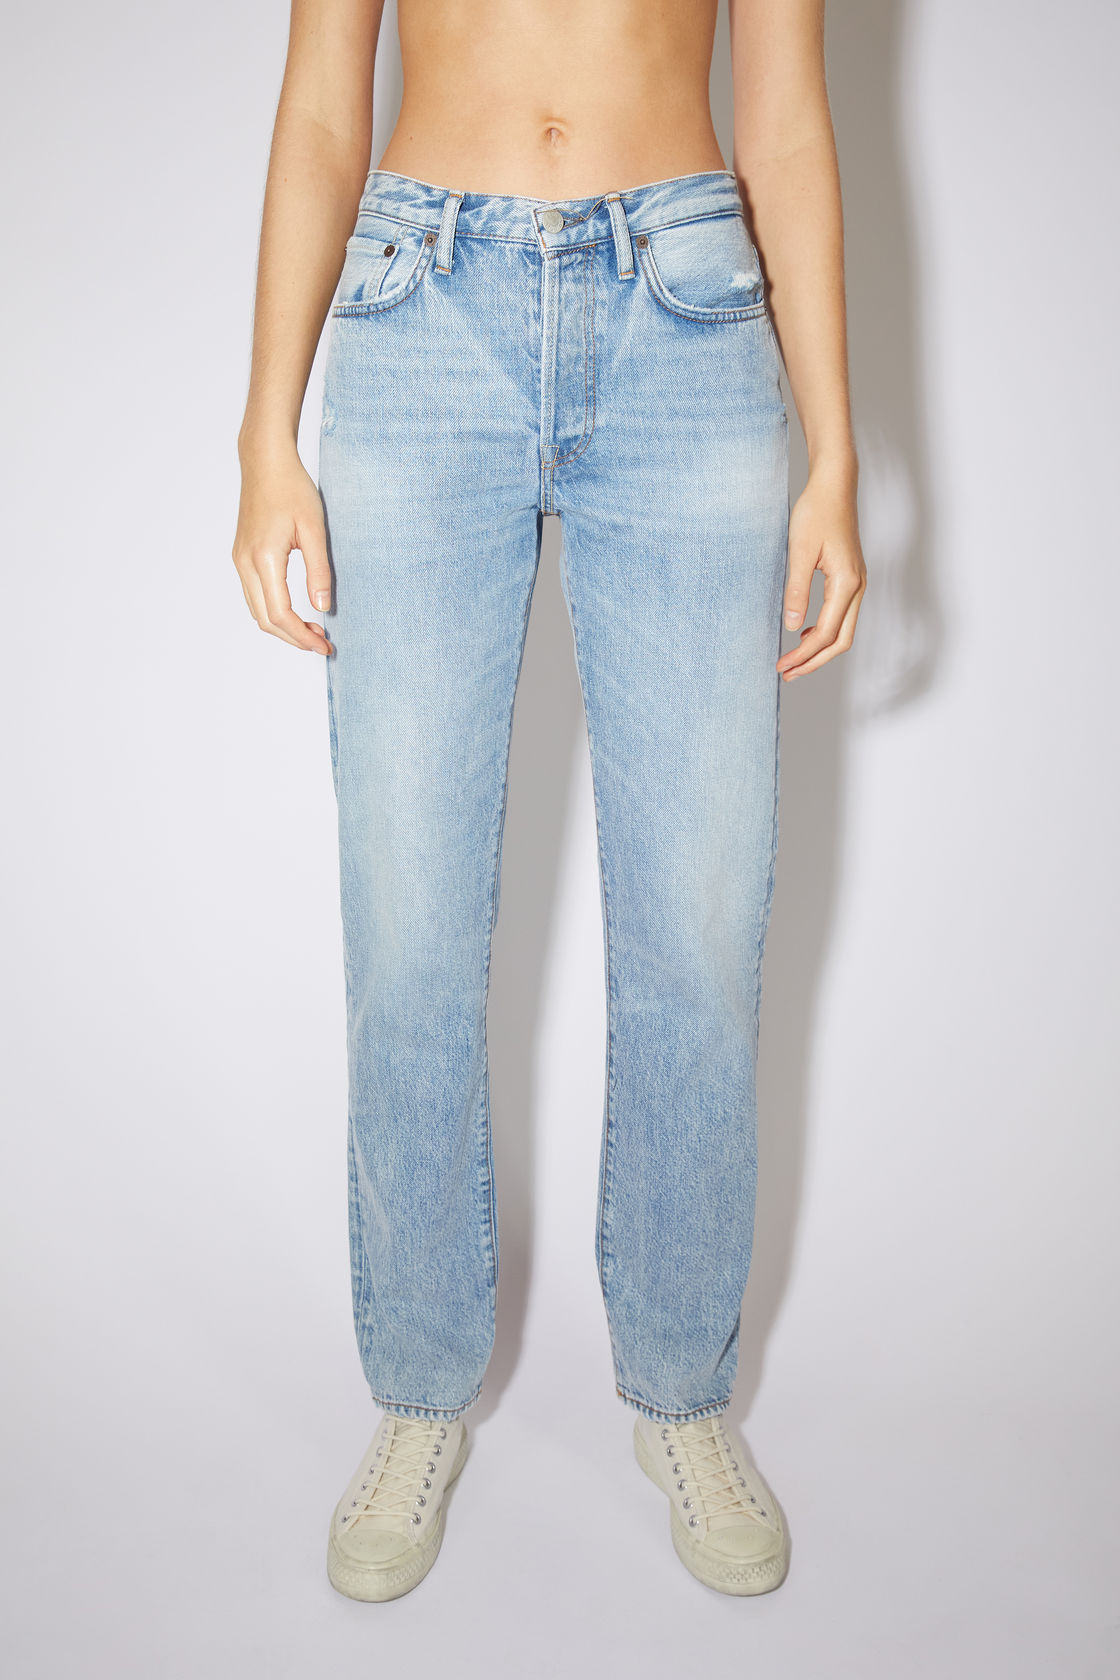 Regular fit jeans light blue by Acne Studios, available on acnestudios.com for $320 Hailey Baldwin Pants Exact Product